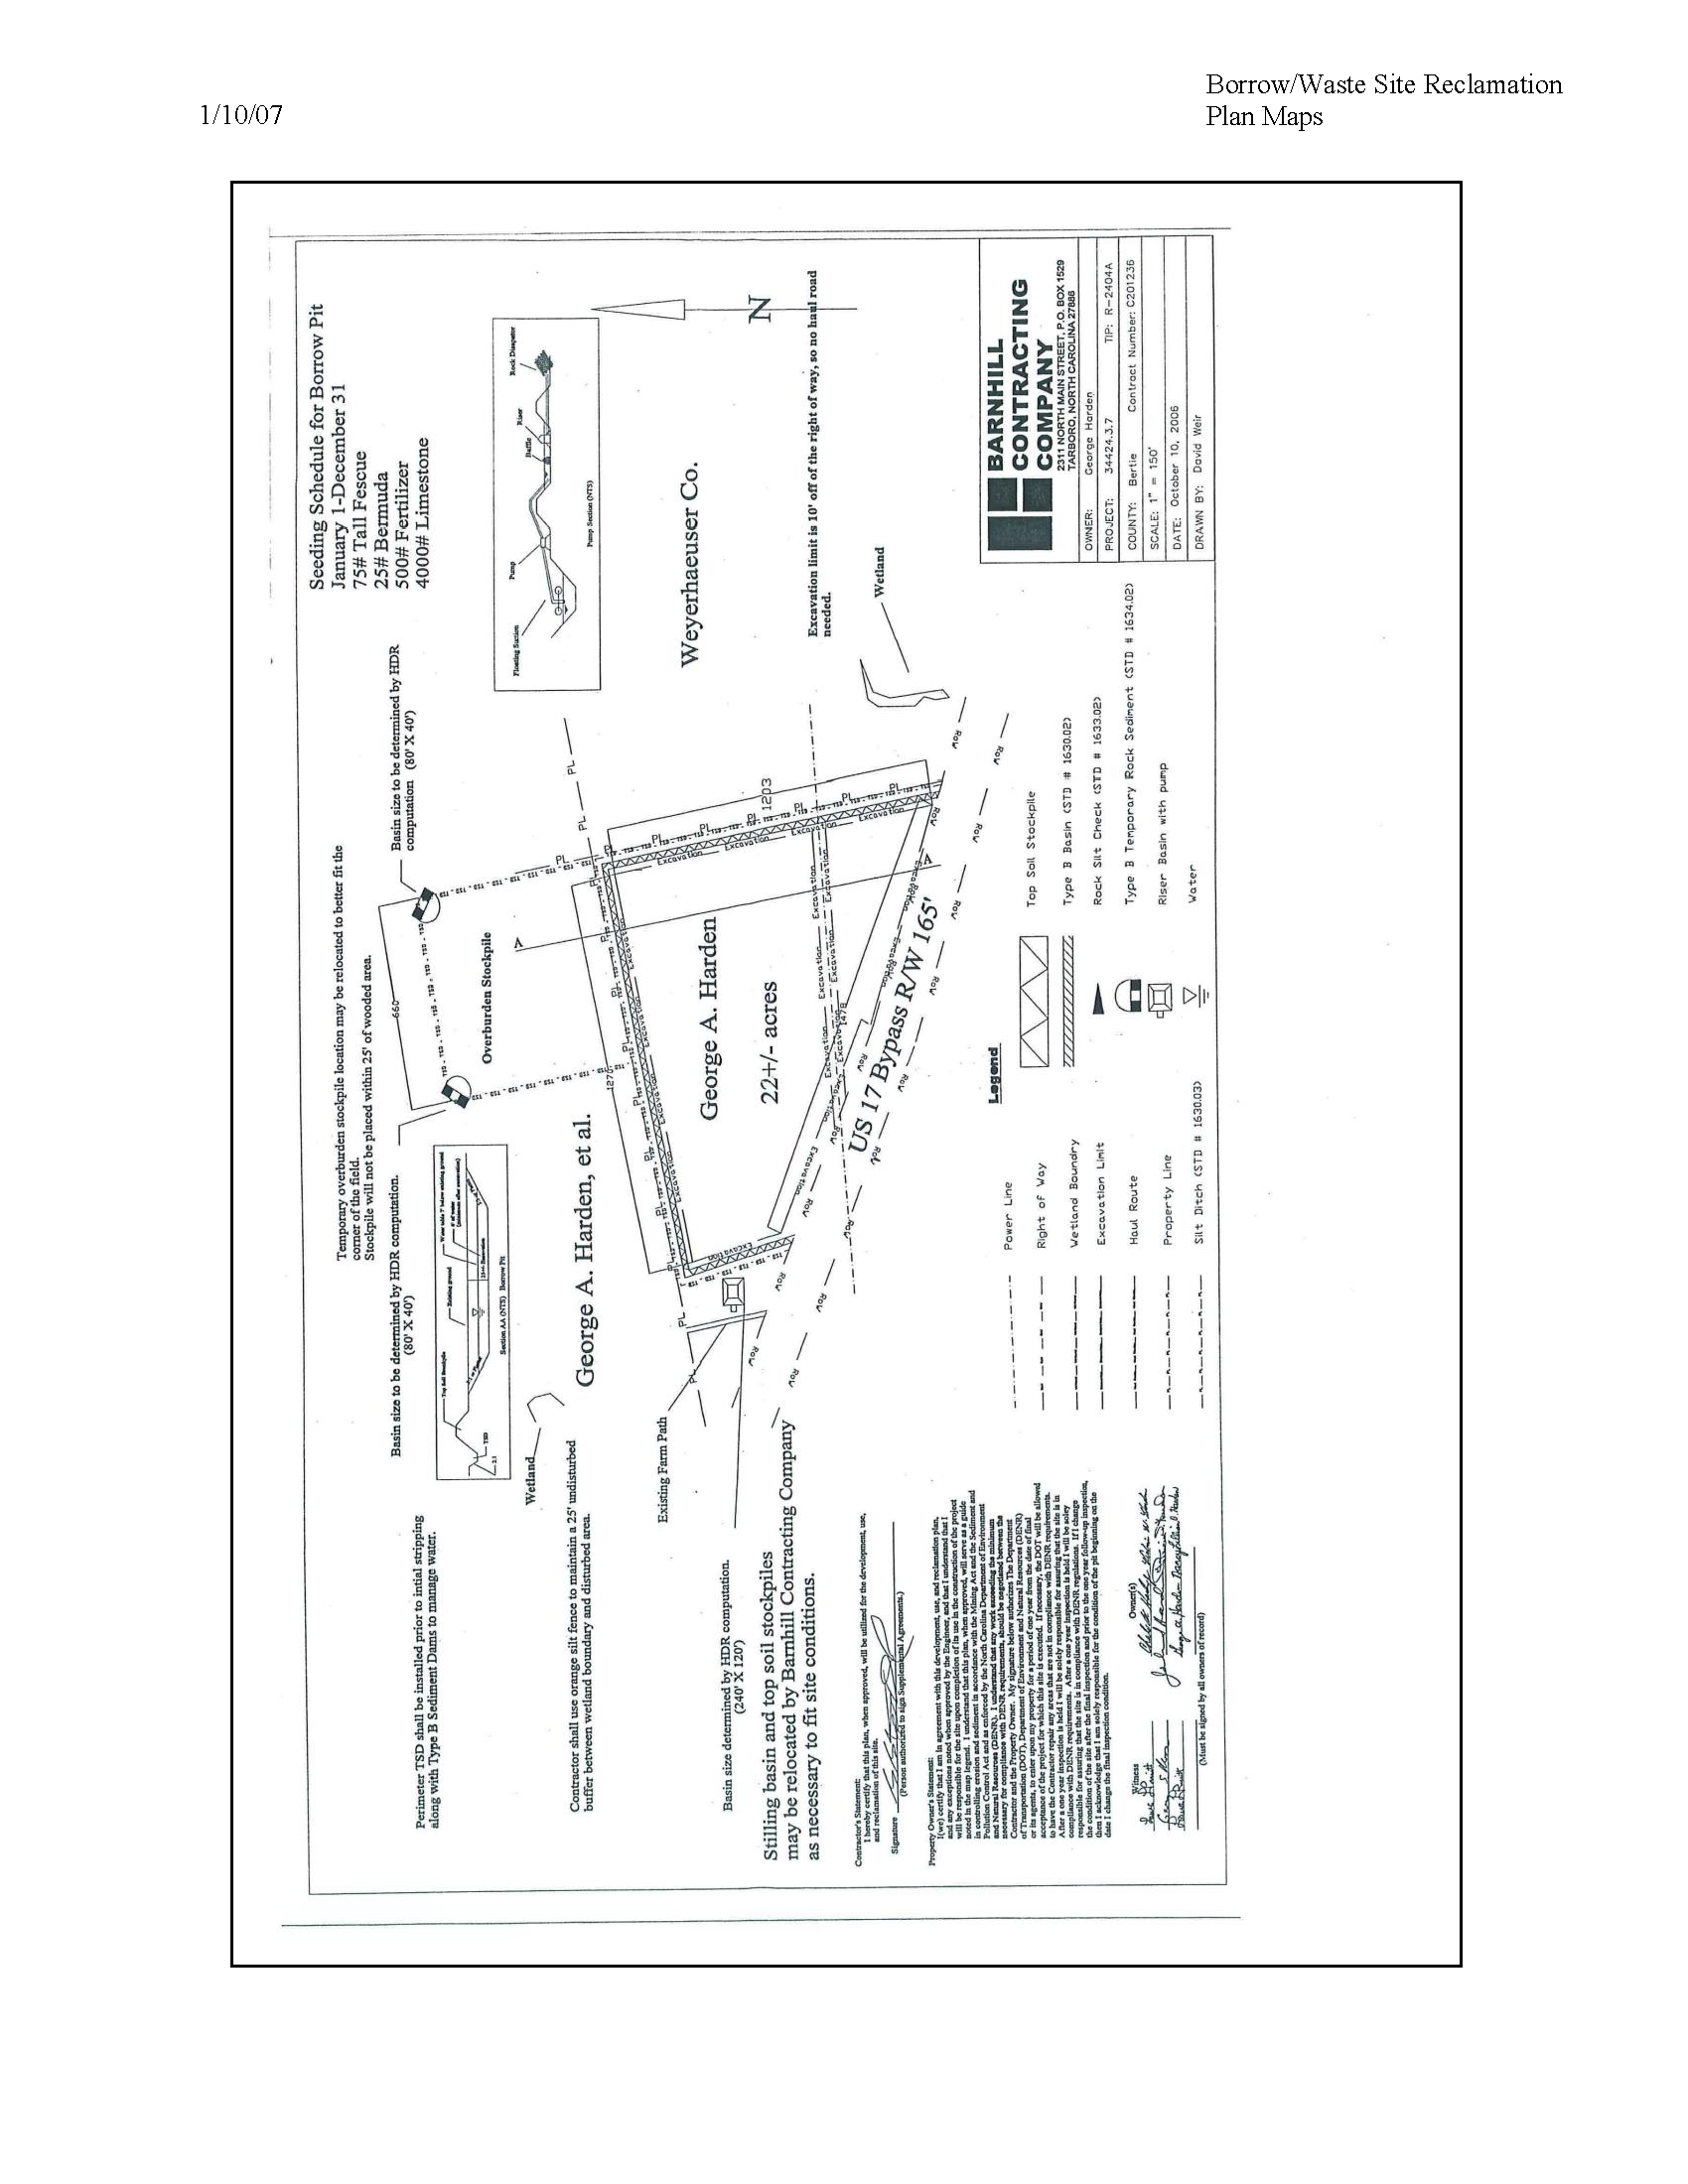 Construction manual all items flat view borrowwaste site reclamation mapsg pooptronica